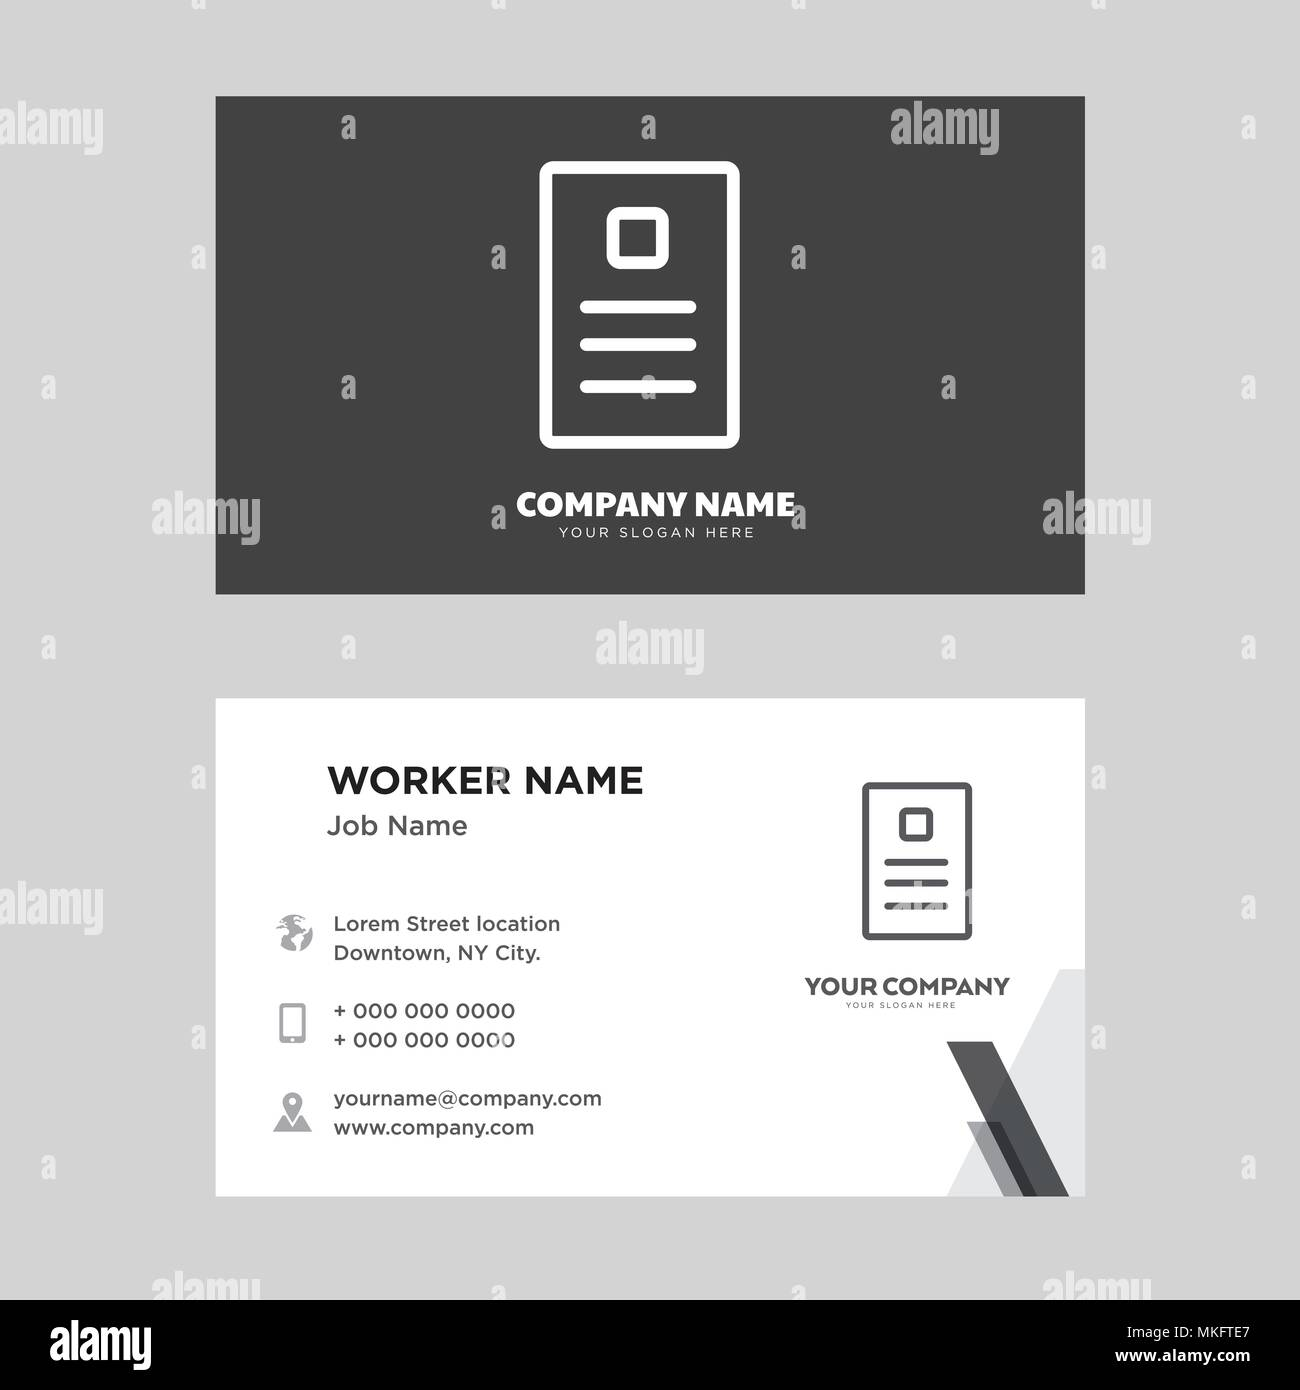 newspaper business card design template visiting for your company modern horizontal identity card vector